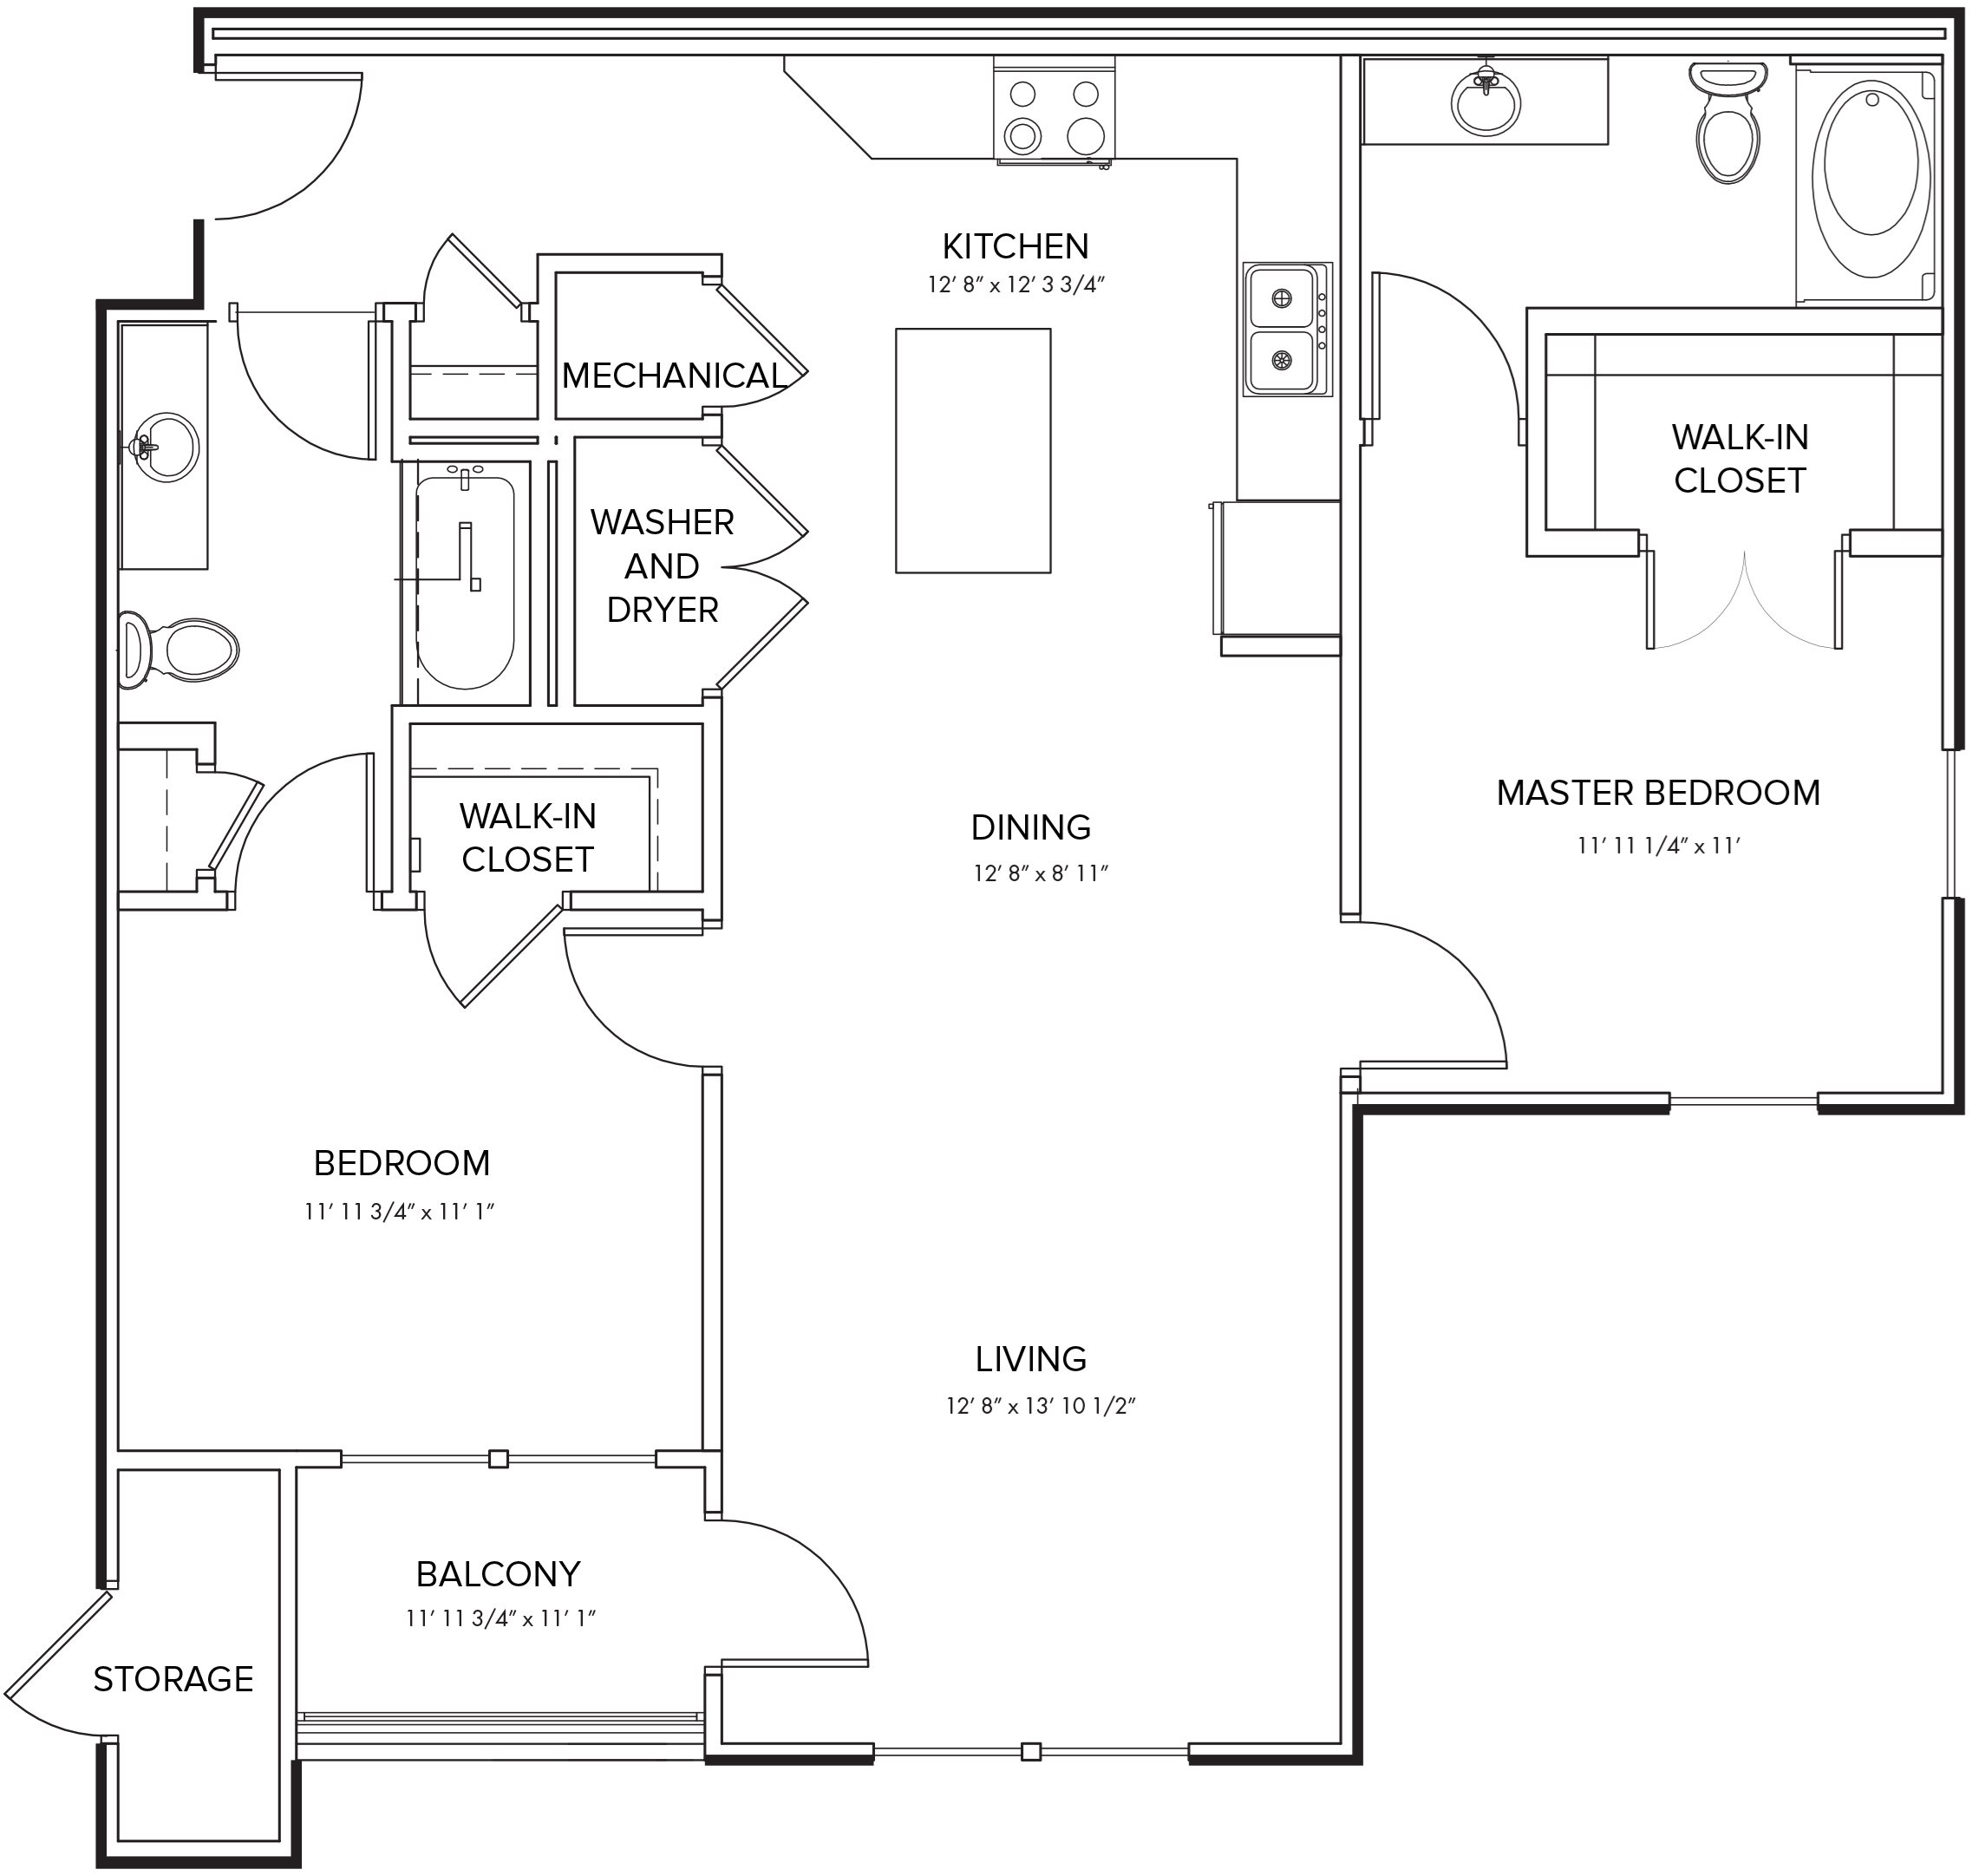 Floor Plans Of Palms At Magnolia Park In Riverview, FL